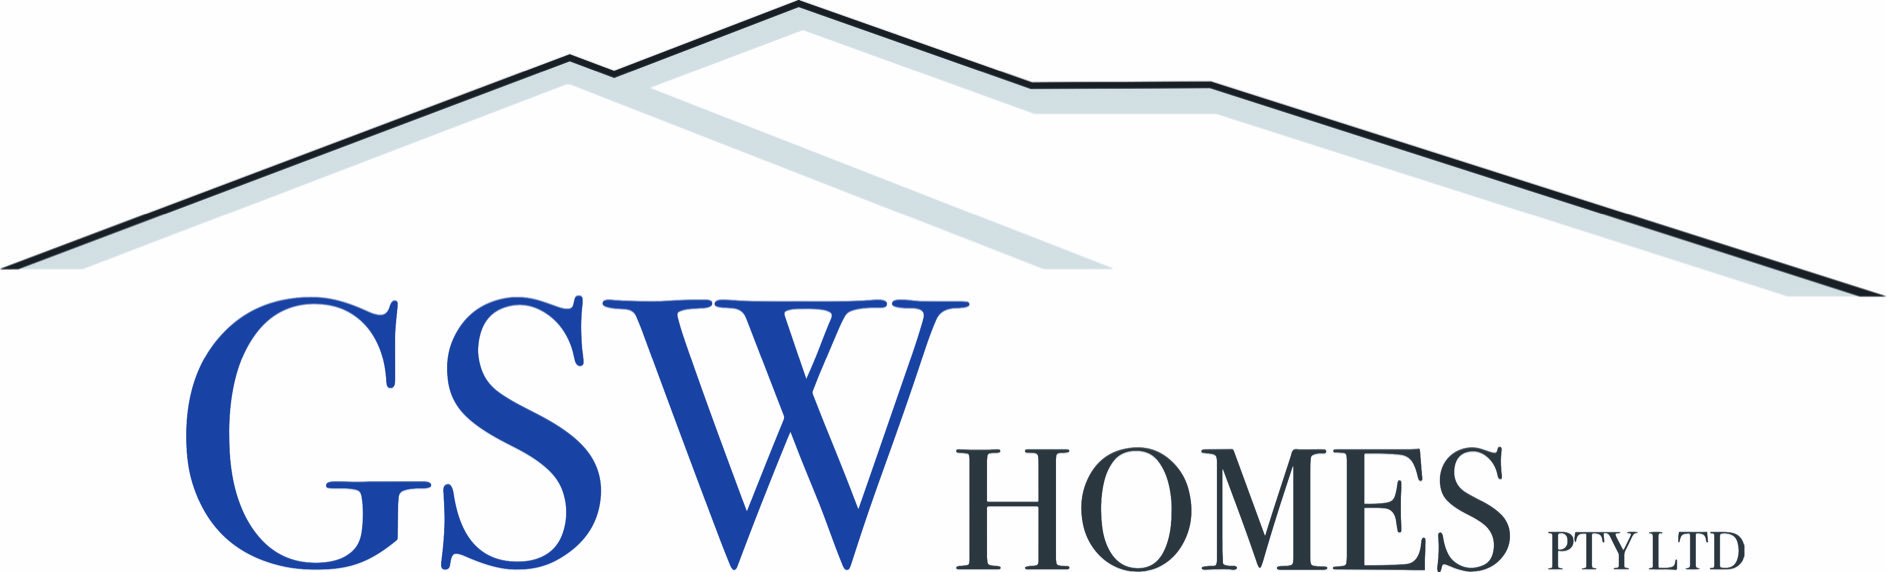 GSW Homes Logo